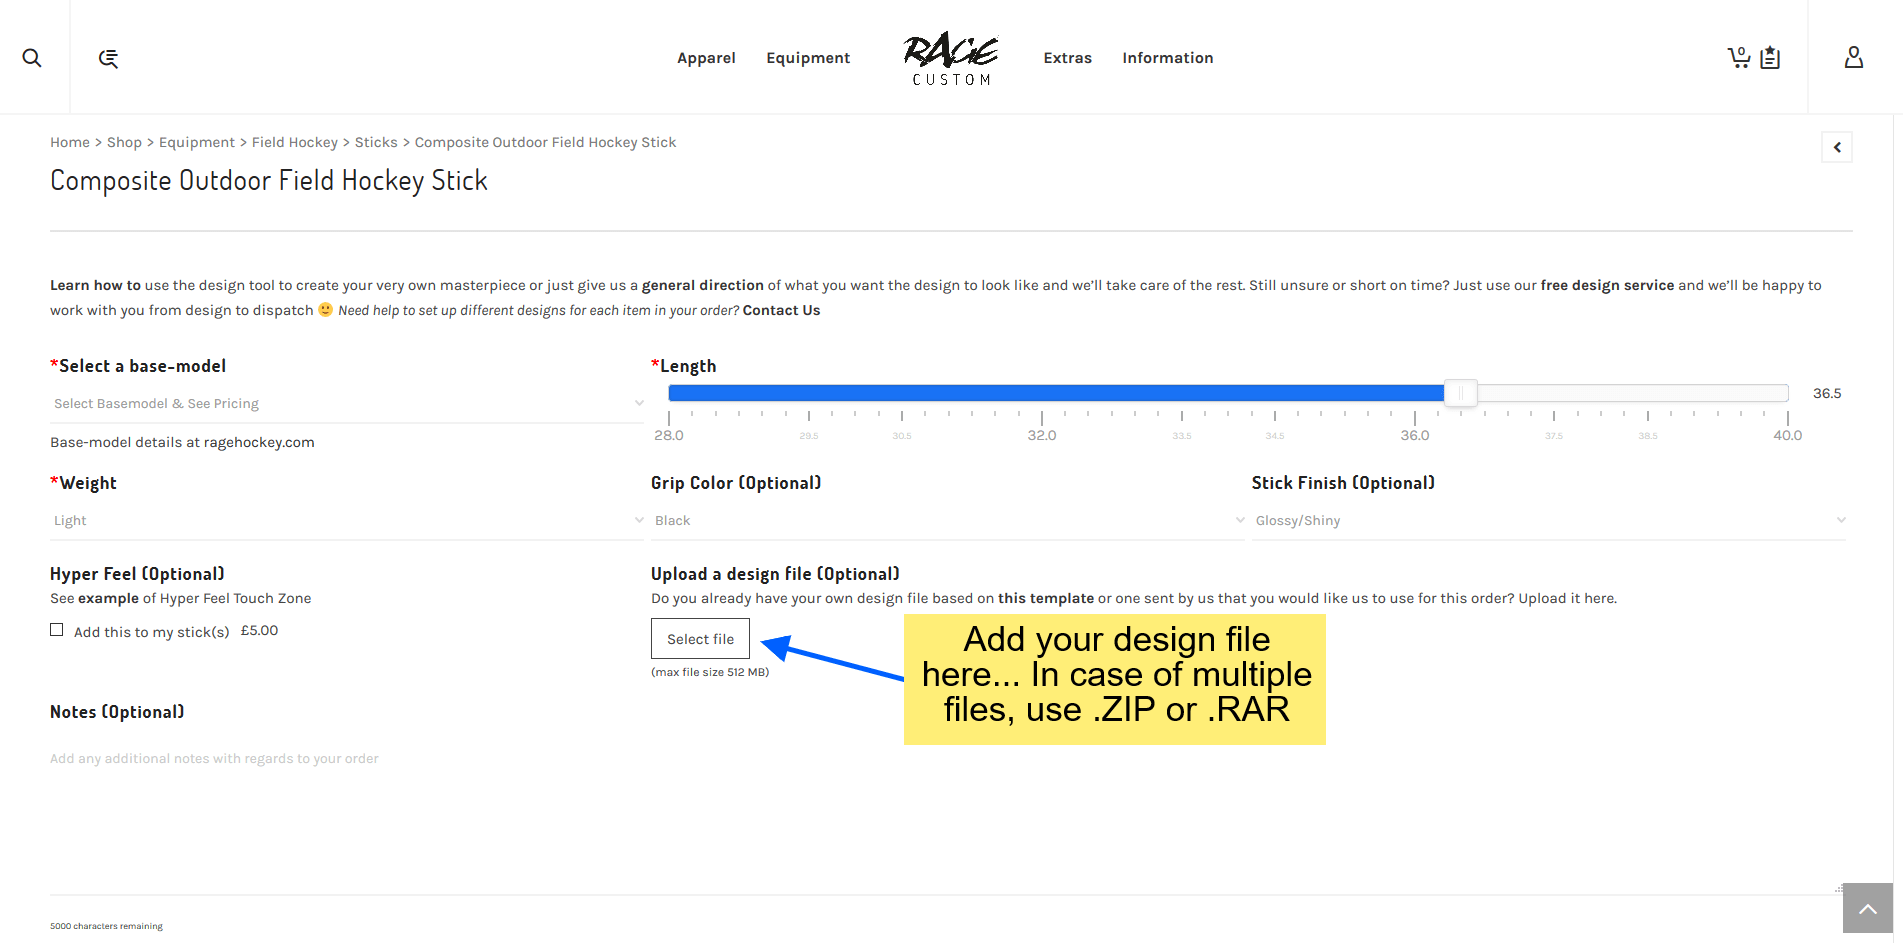 How to place a custom order if you have a design file?